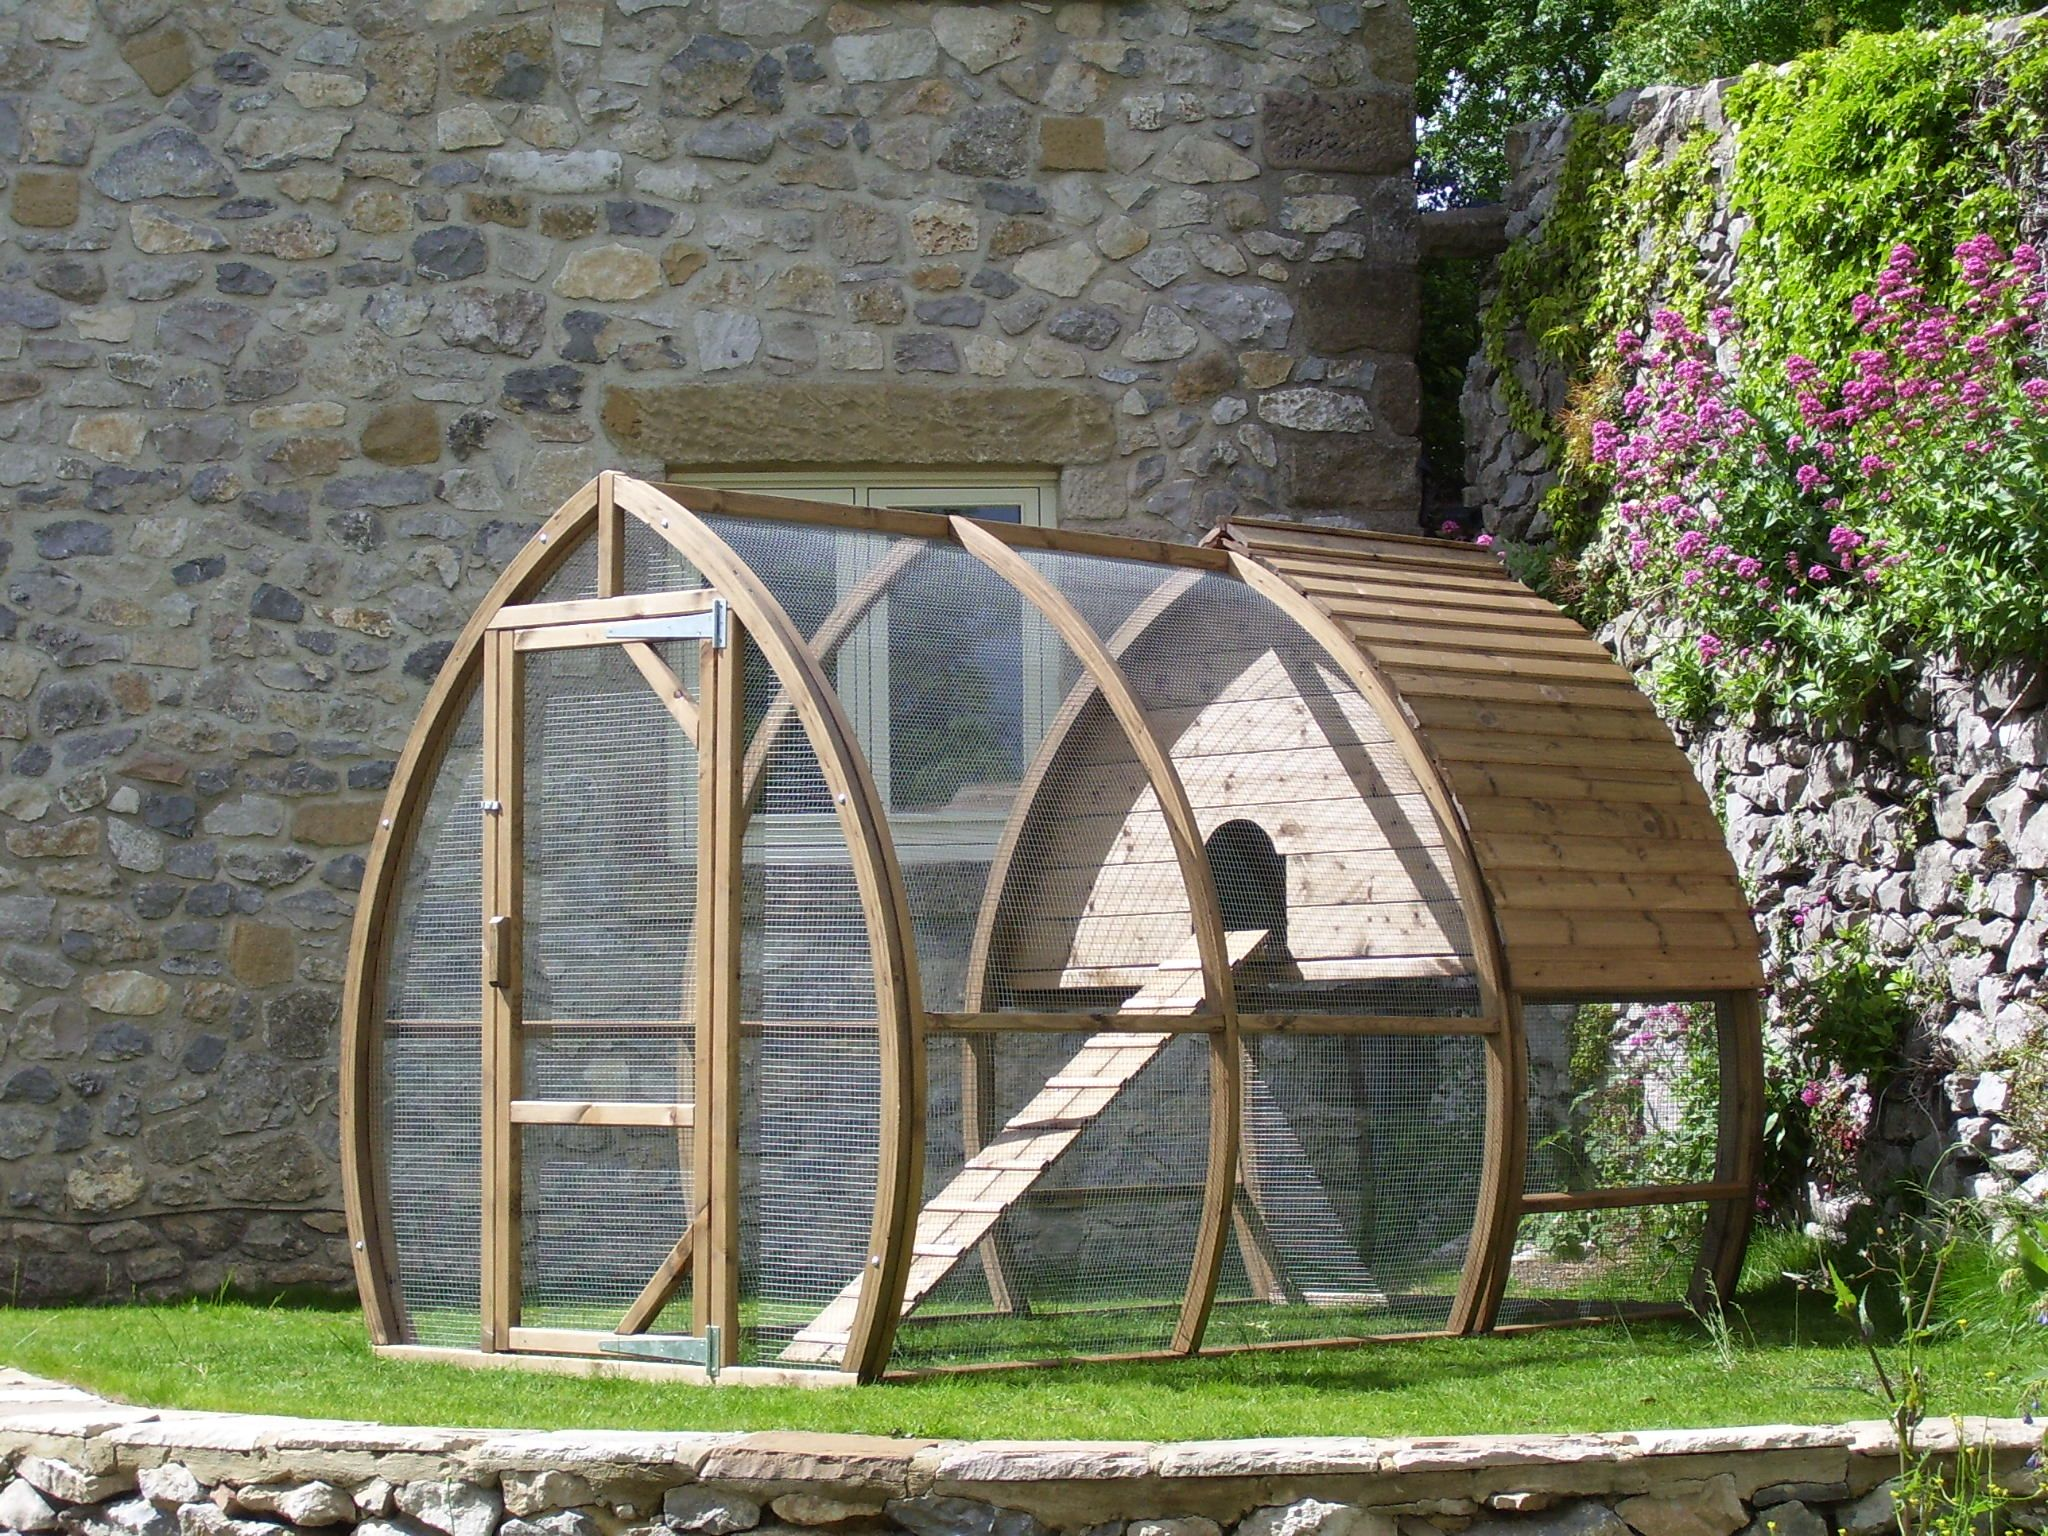 33565959699958202 on Gothic Arch Greenhouse Plans